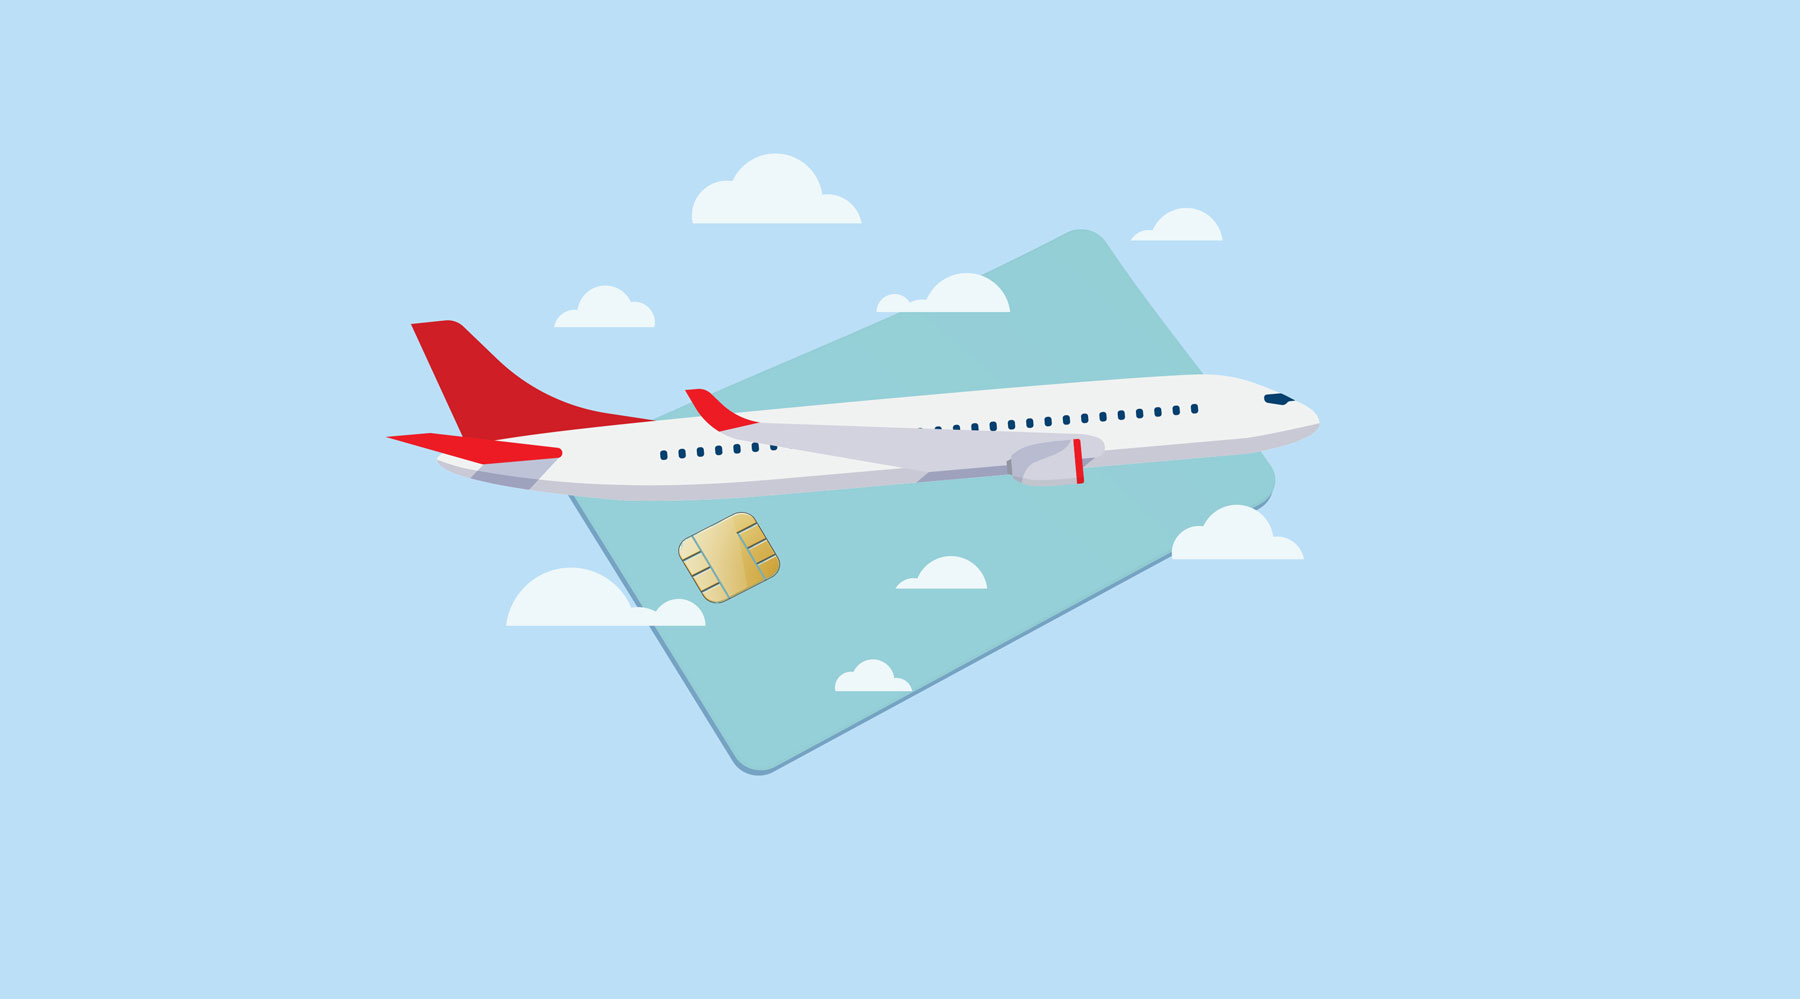 Travel rewards credit cards - how to pick, tips, and more